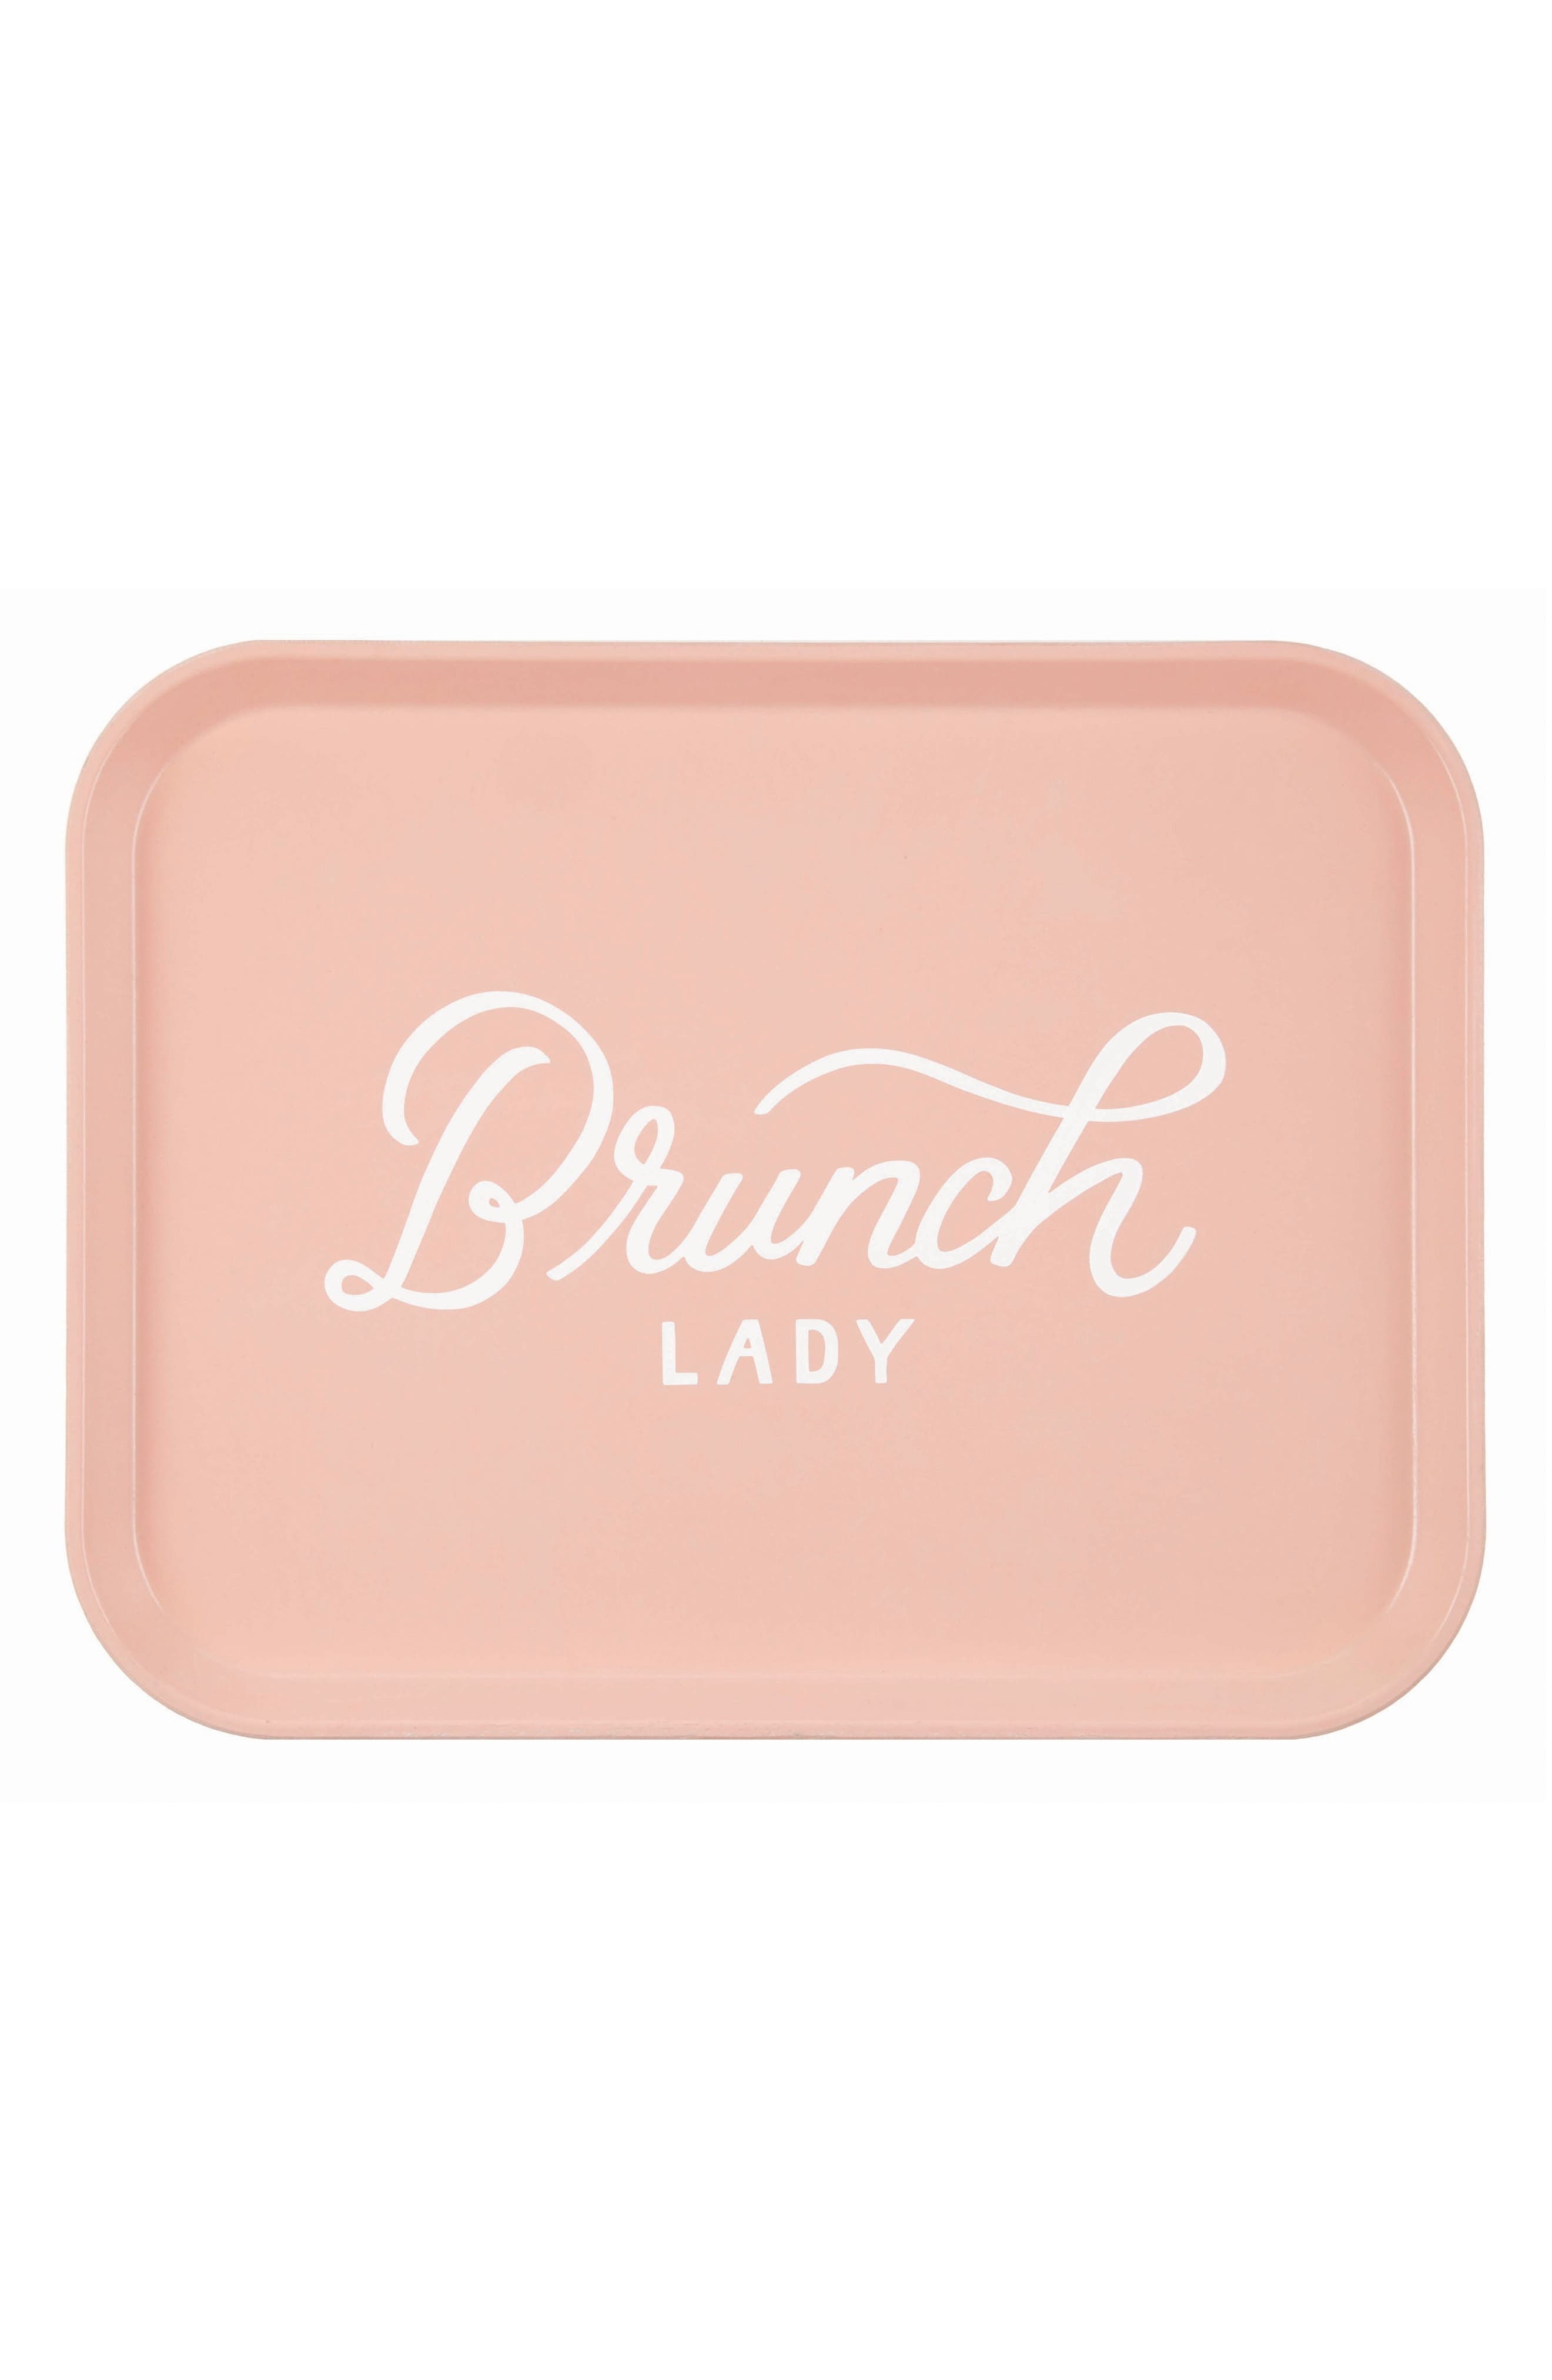 Brunch Lady Tray,                         Main,                         color, 650